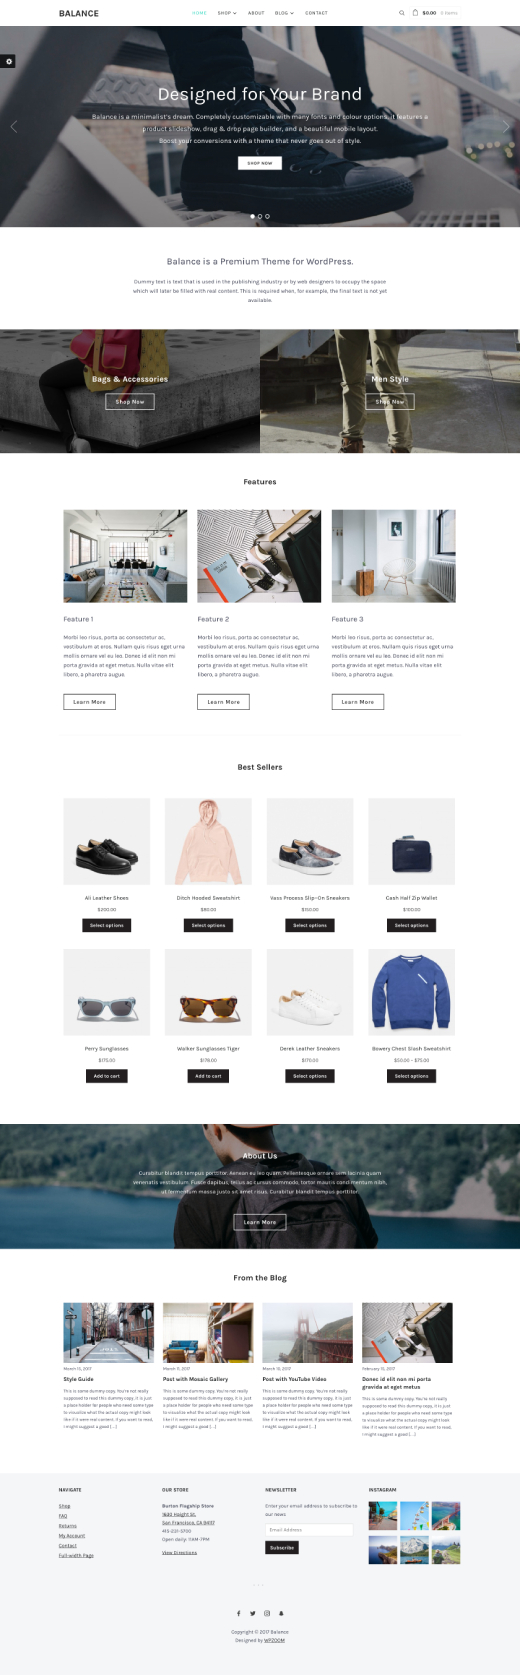 Balance • Minimalist WooCommerce WordPress Theme – WPZOOM